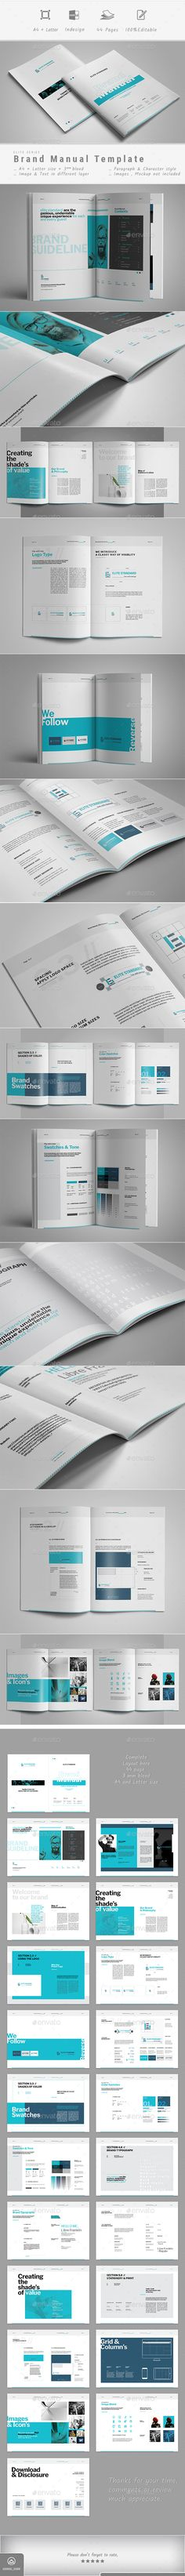 Corporate Business Brochure 20 Pages A4 Template InDesign INDD - manual templates